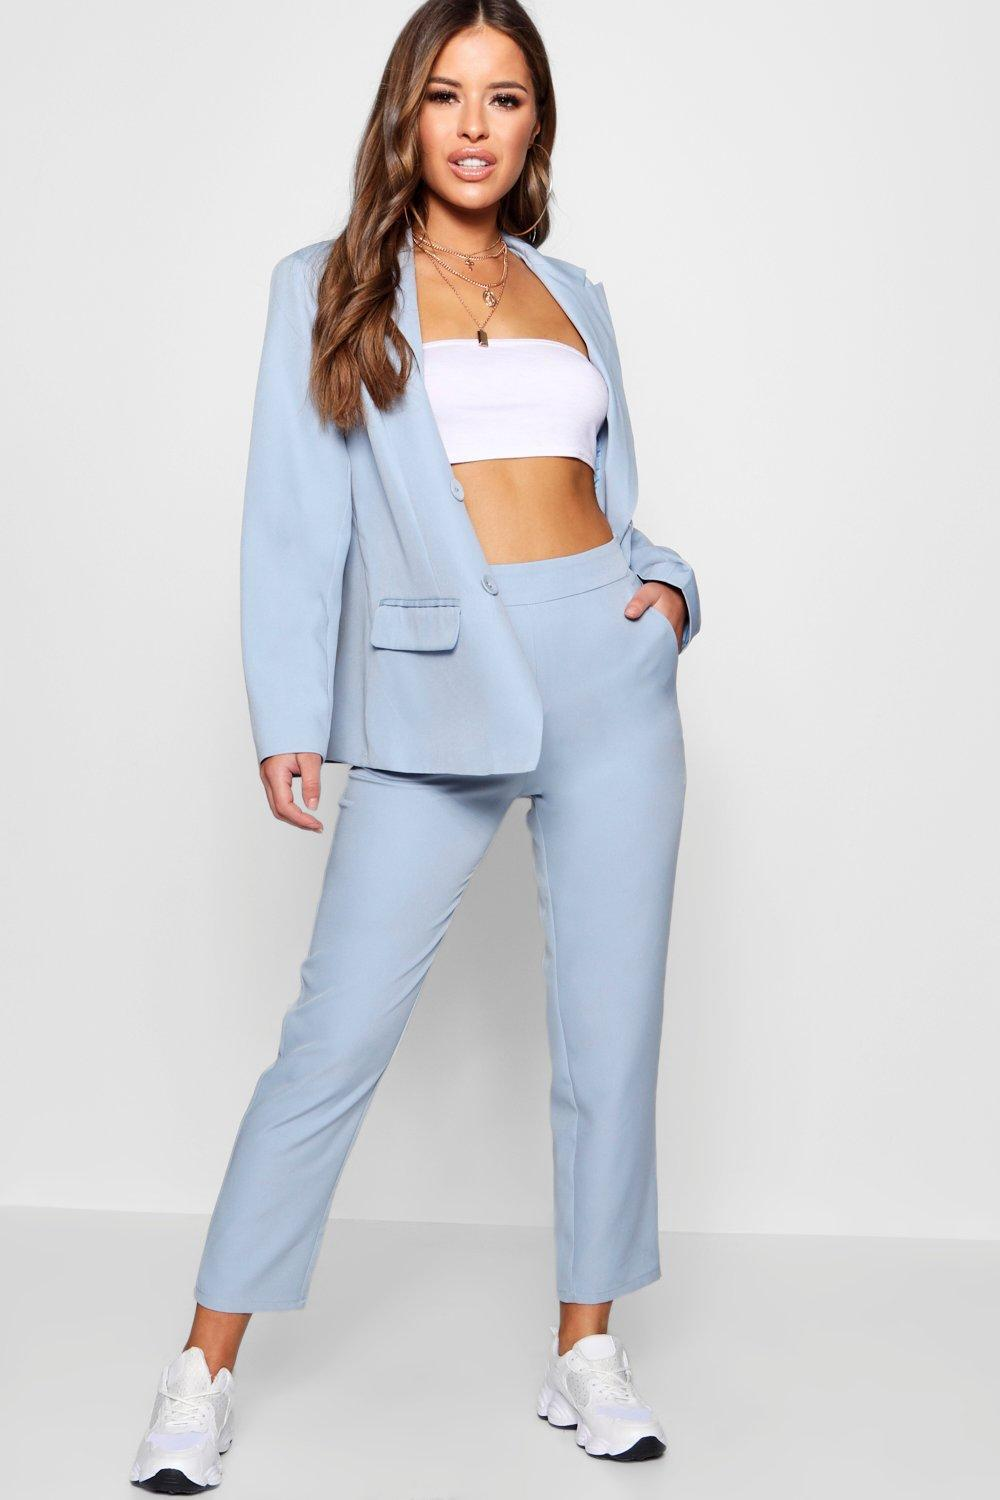 Cost Boohoo Petite Pastel Check High Waisted Woven Trousers Cheap Sale 2018 Newest For Sale Online Store Online 9nSZYbO